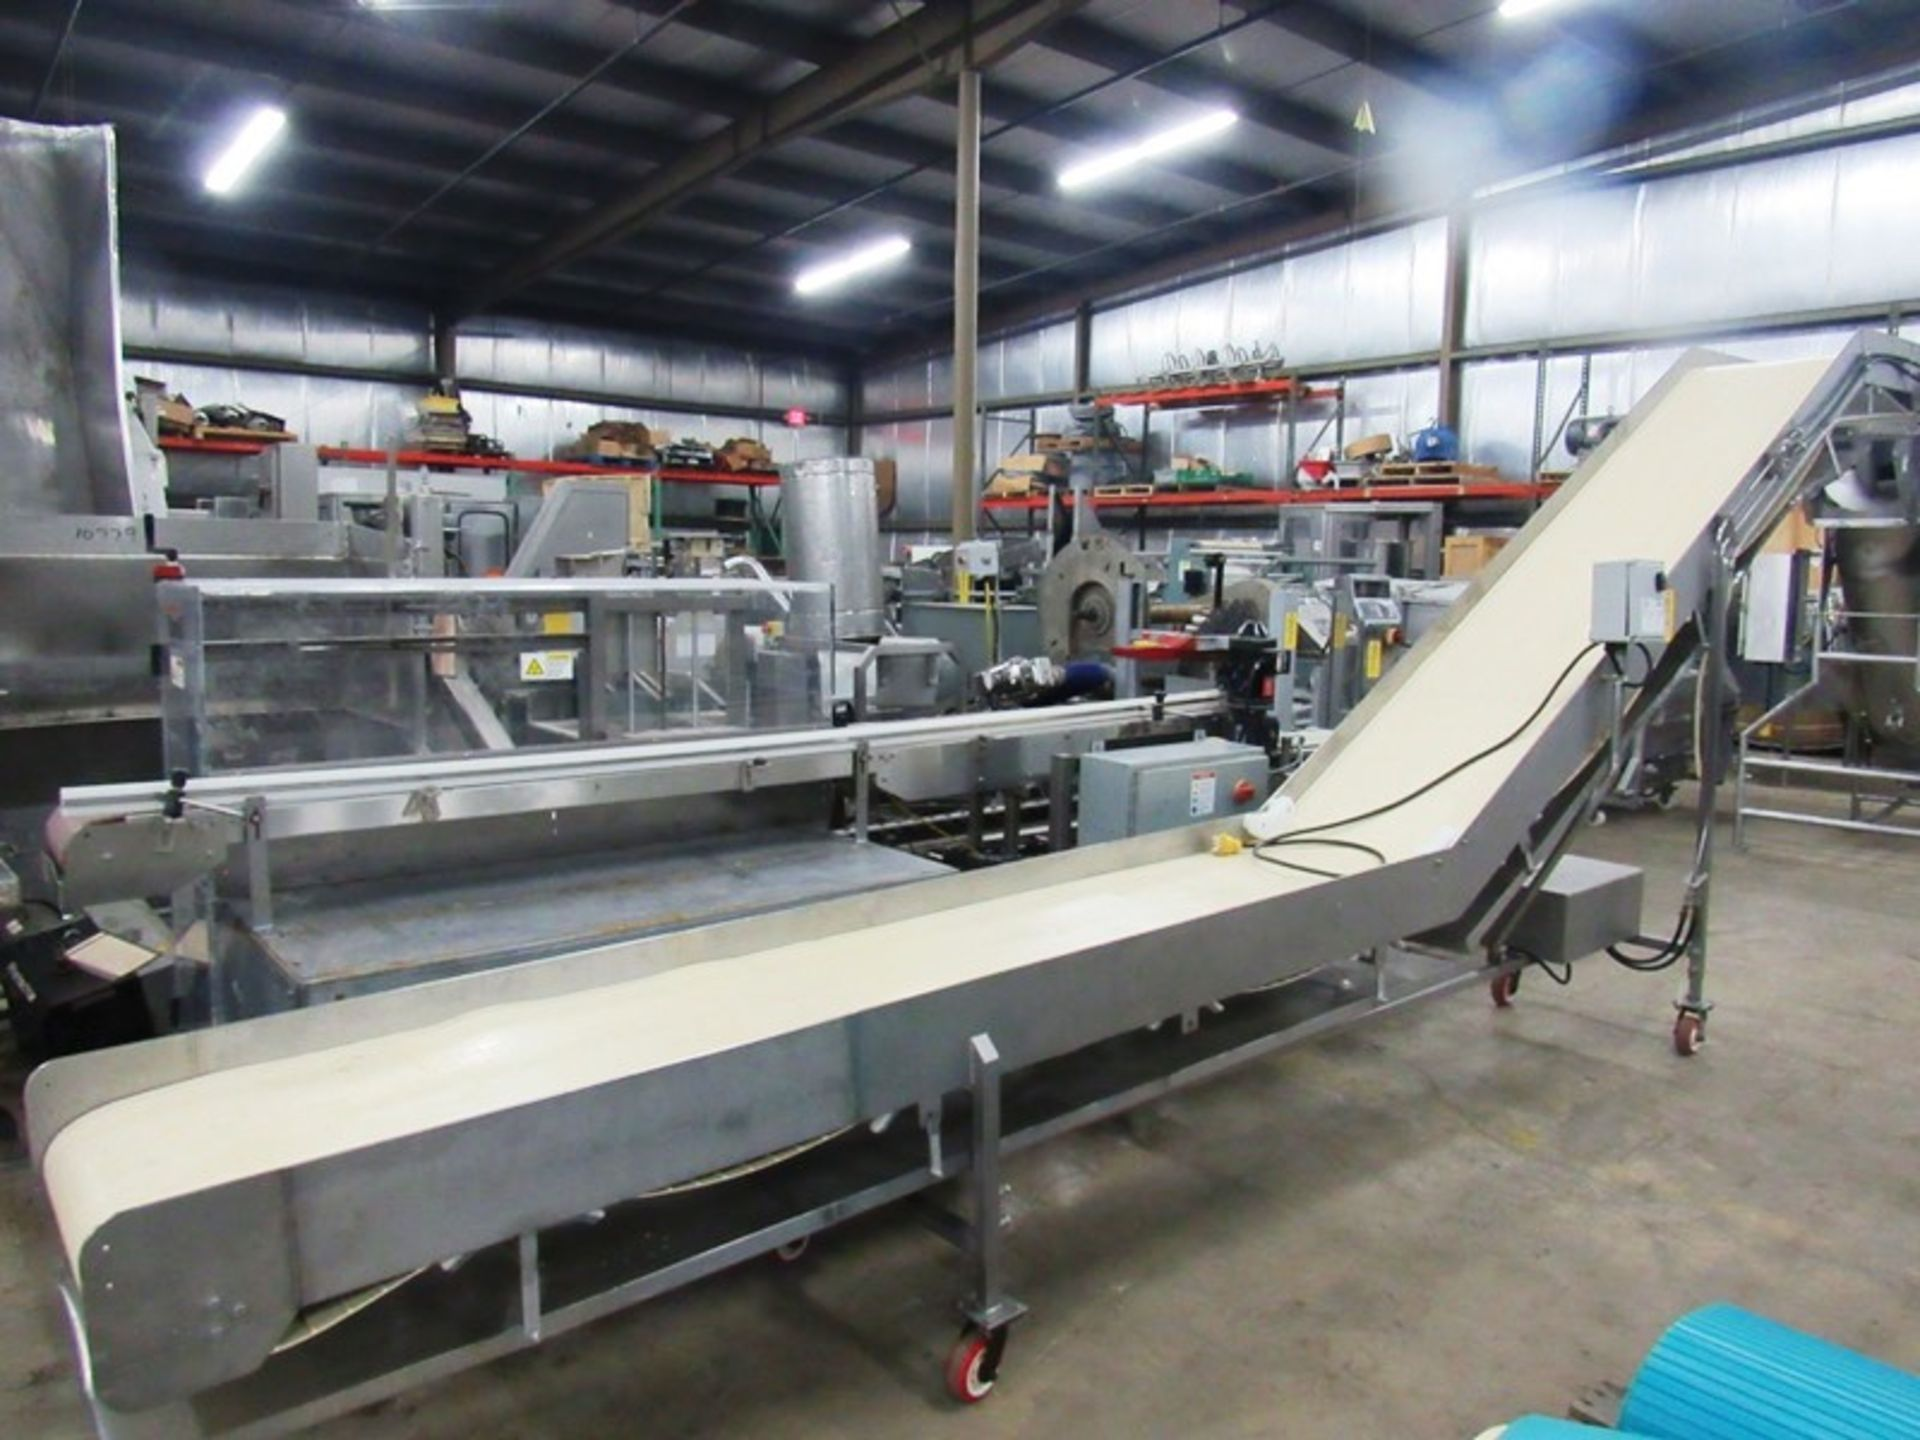 """Lot 14 - Stainless Steel Incline Conveyor, 24"""" W X 22' L neoprene belt, 27"""" infeed height, 8' discharge, on"""